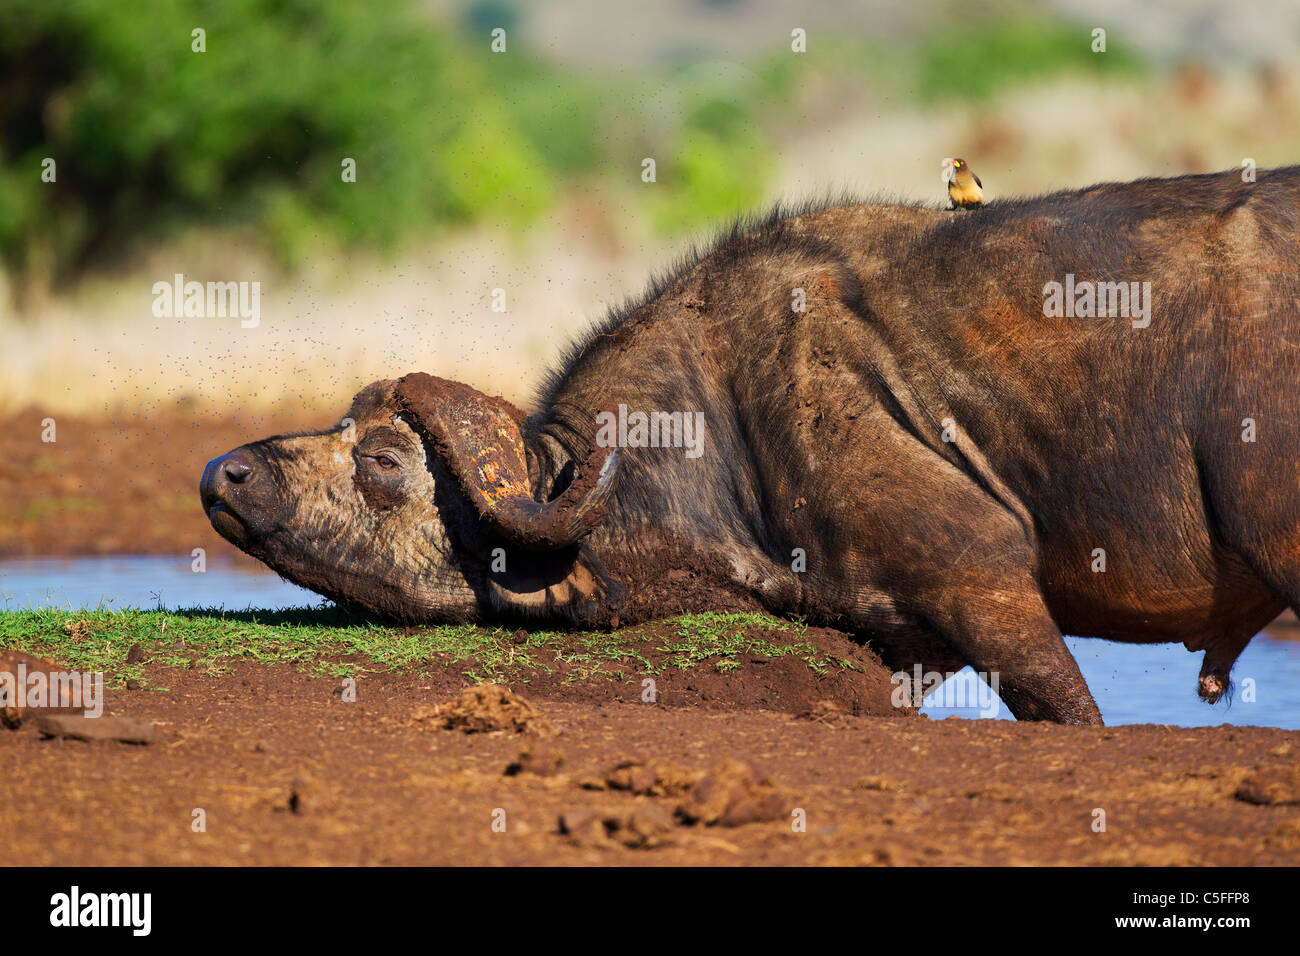 Cape Buffalo (Syncerus caffer) in Kenya - Stock Image